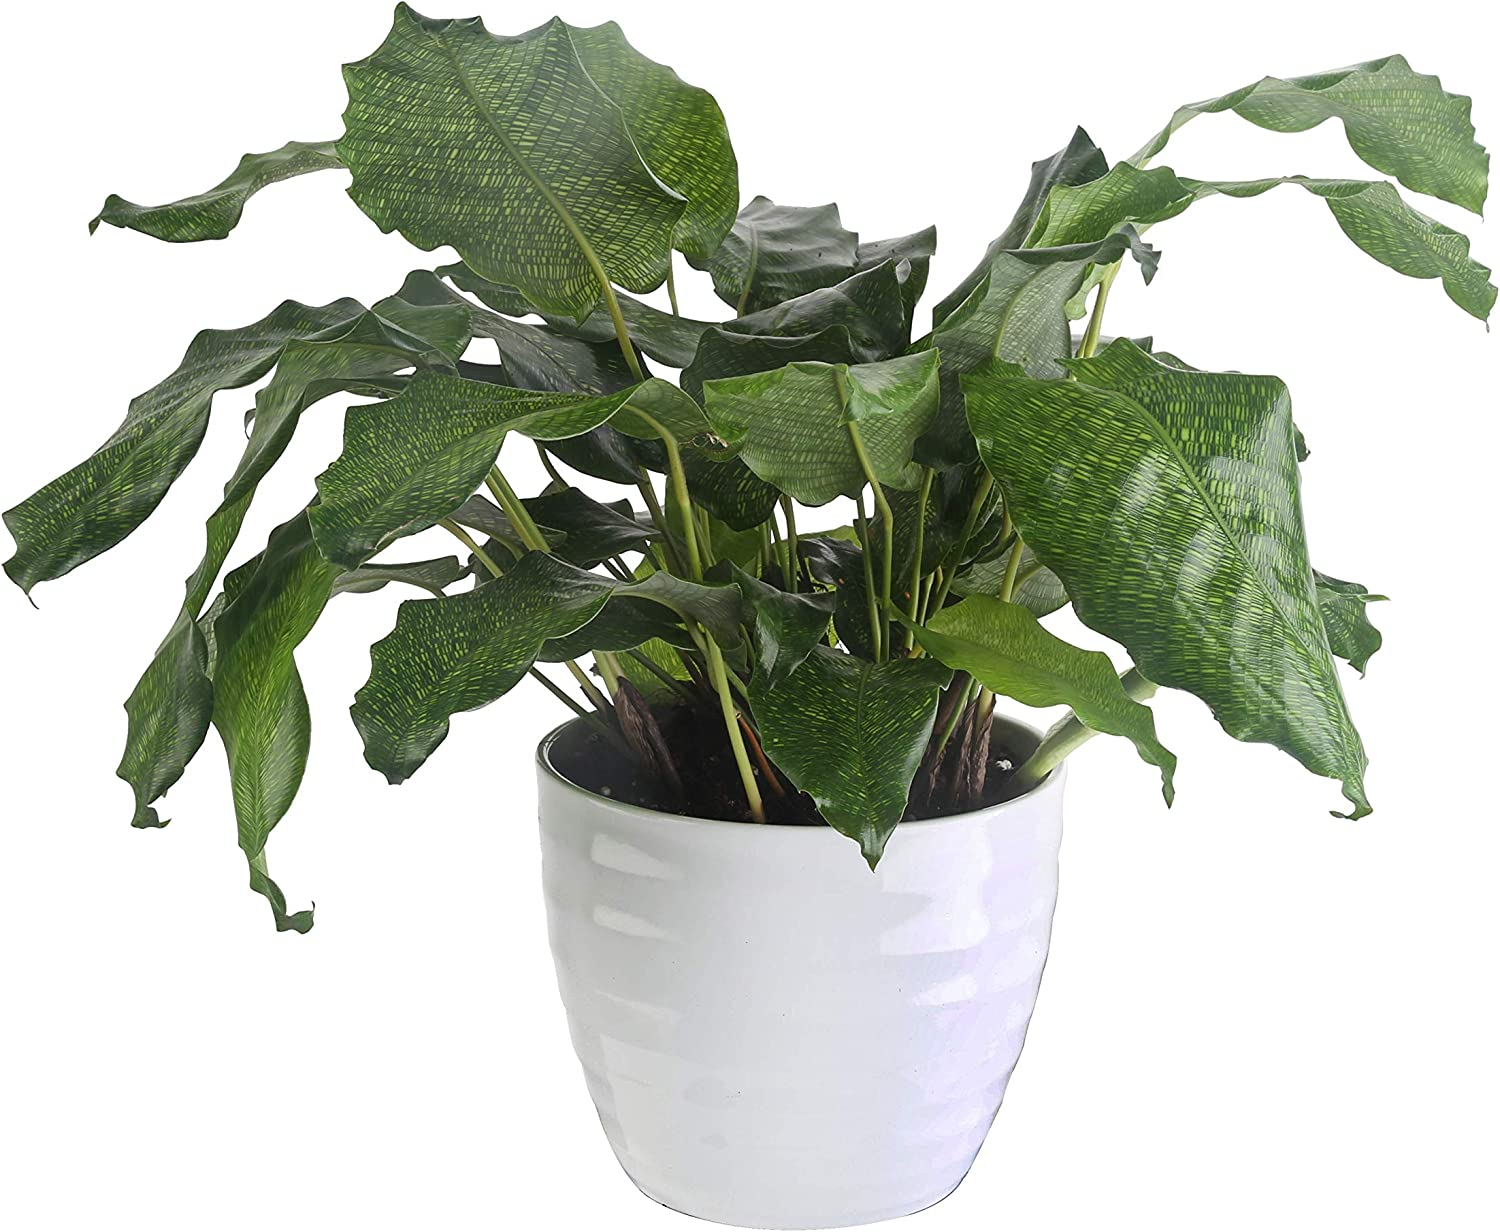 Max 72% OFF Costa Farms Calathea Network Credence Collection Tropicals Live Trending